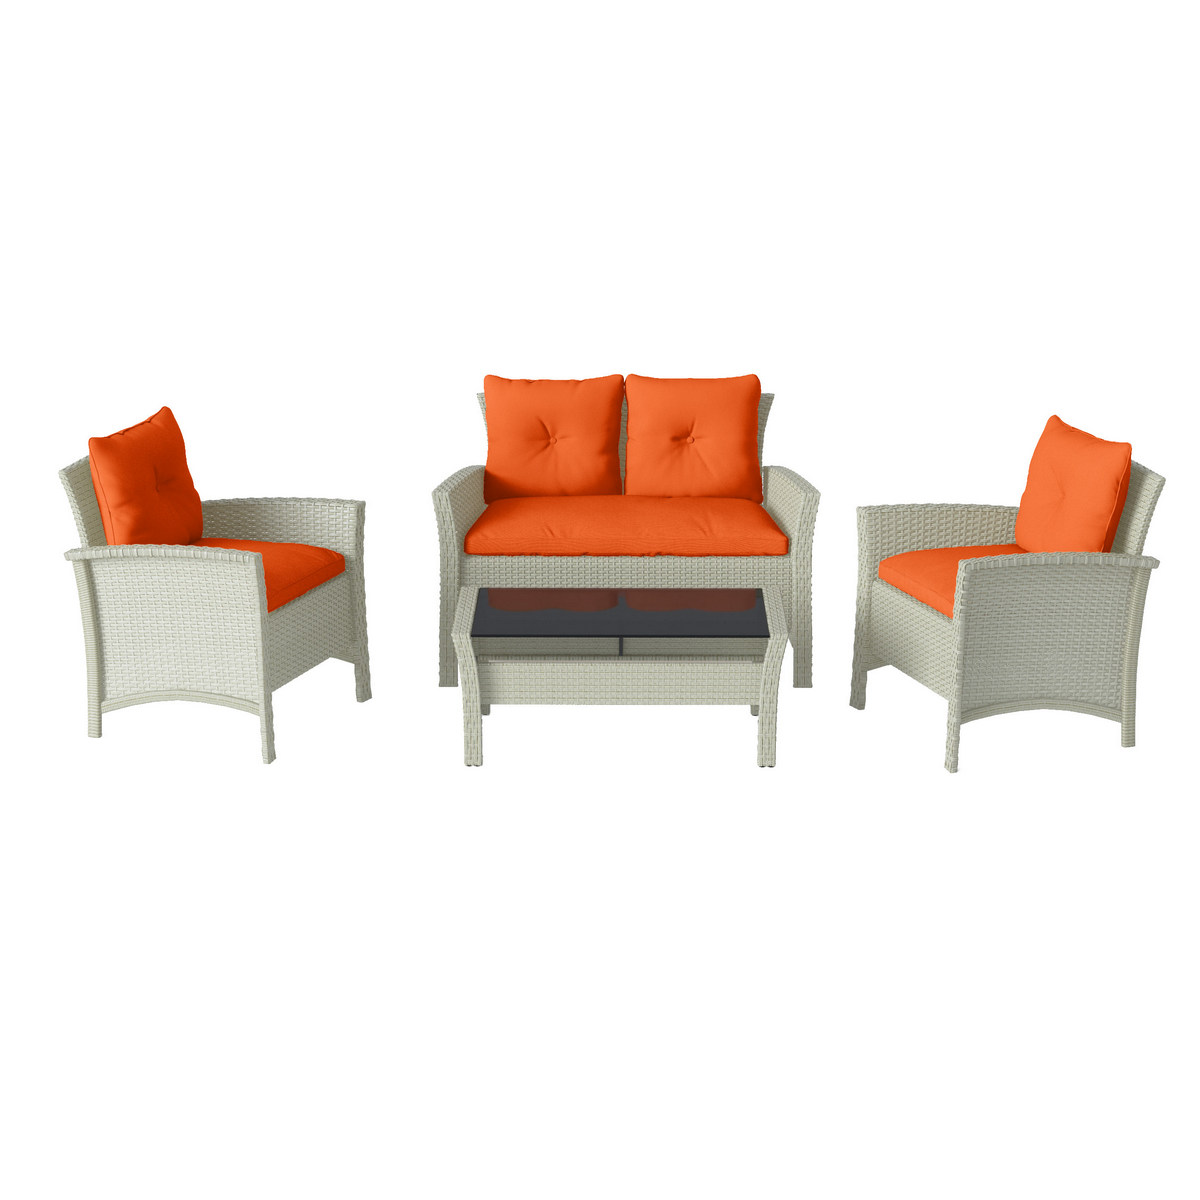 Corliving Furniture Patio Set Resin Rattan Wicker Orange Photo